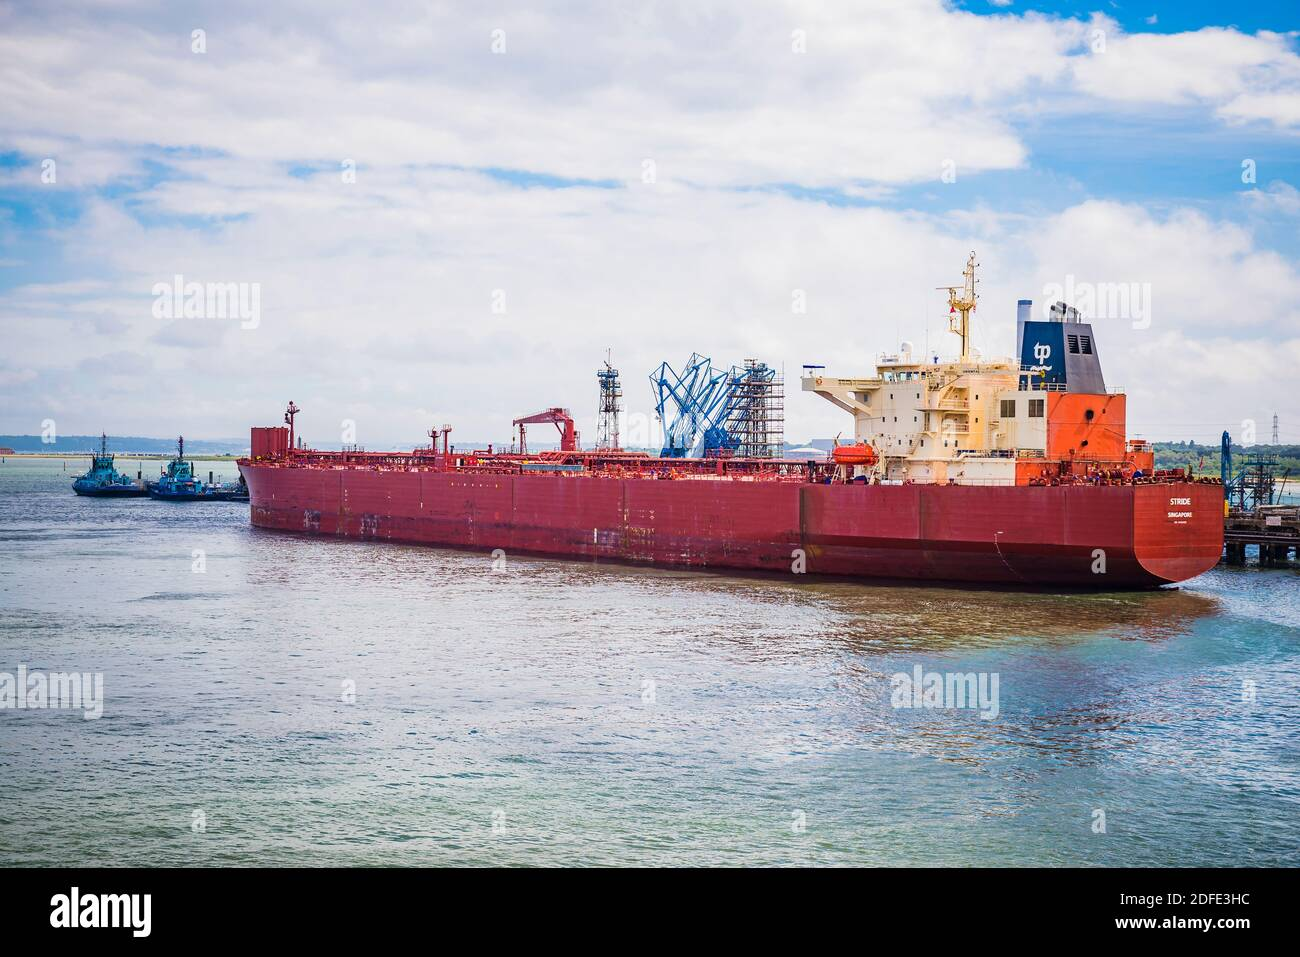 STRIDE, Crude Oil Tanker at Fawley Marine Terminal on Southampton Water. Southampton, Hampshire, England, United Kingdom, Europe Stock Photo